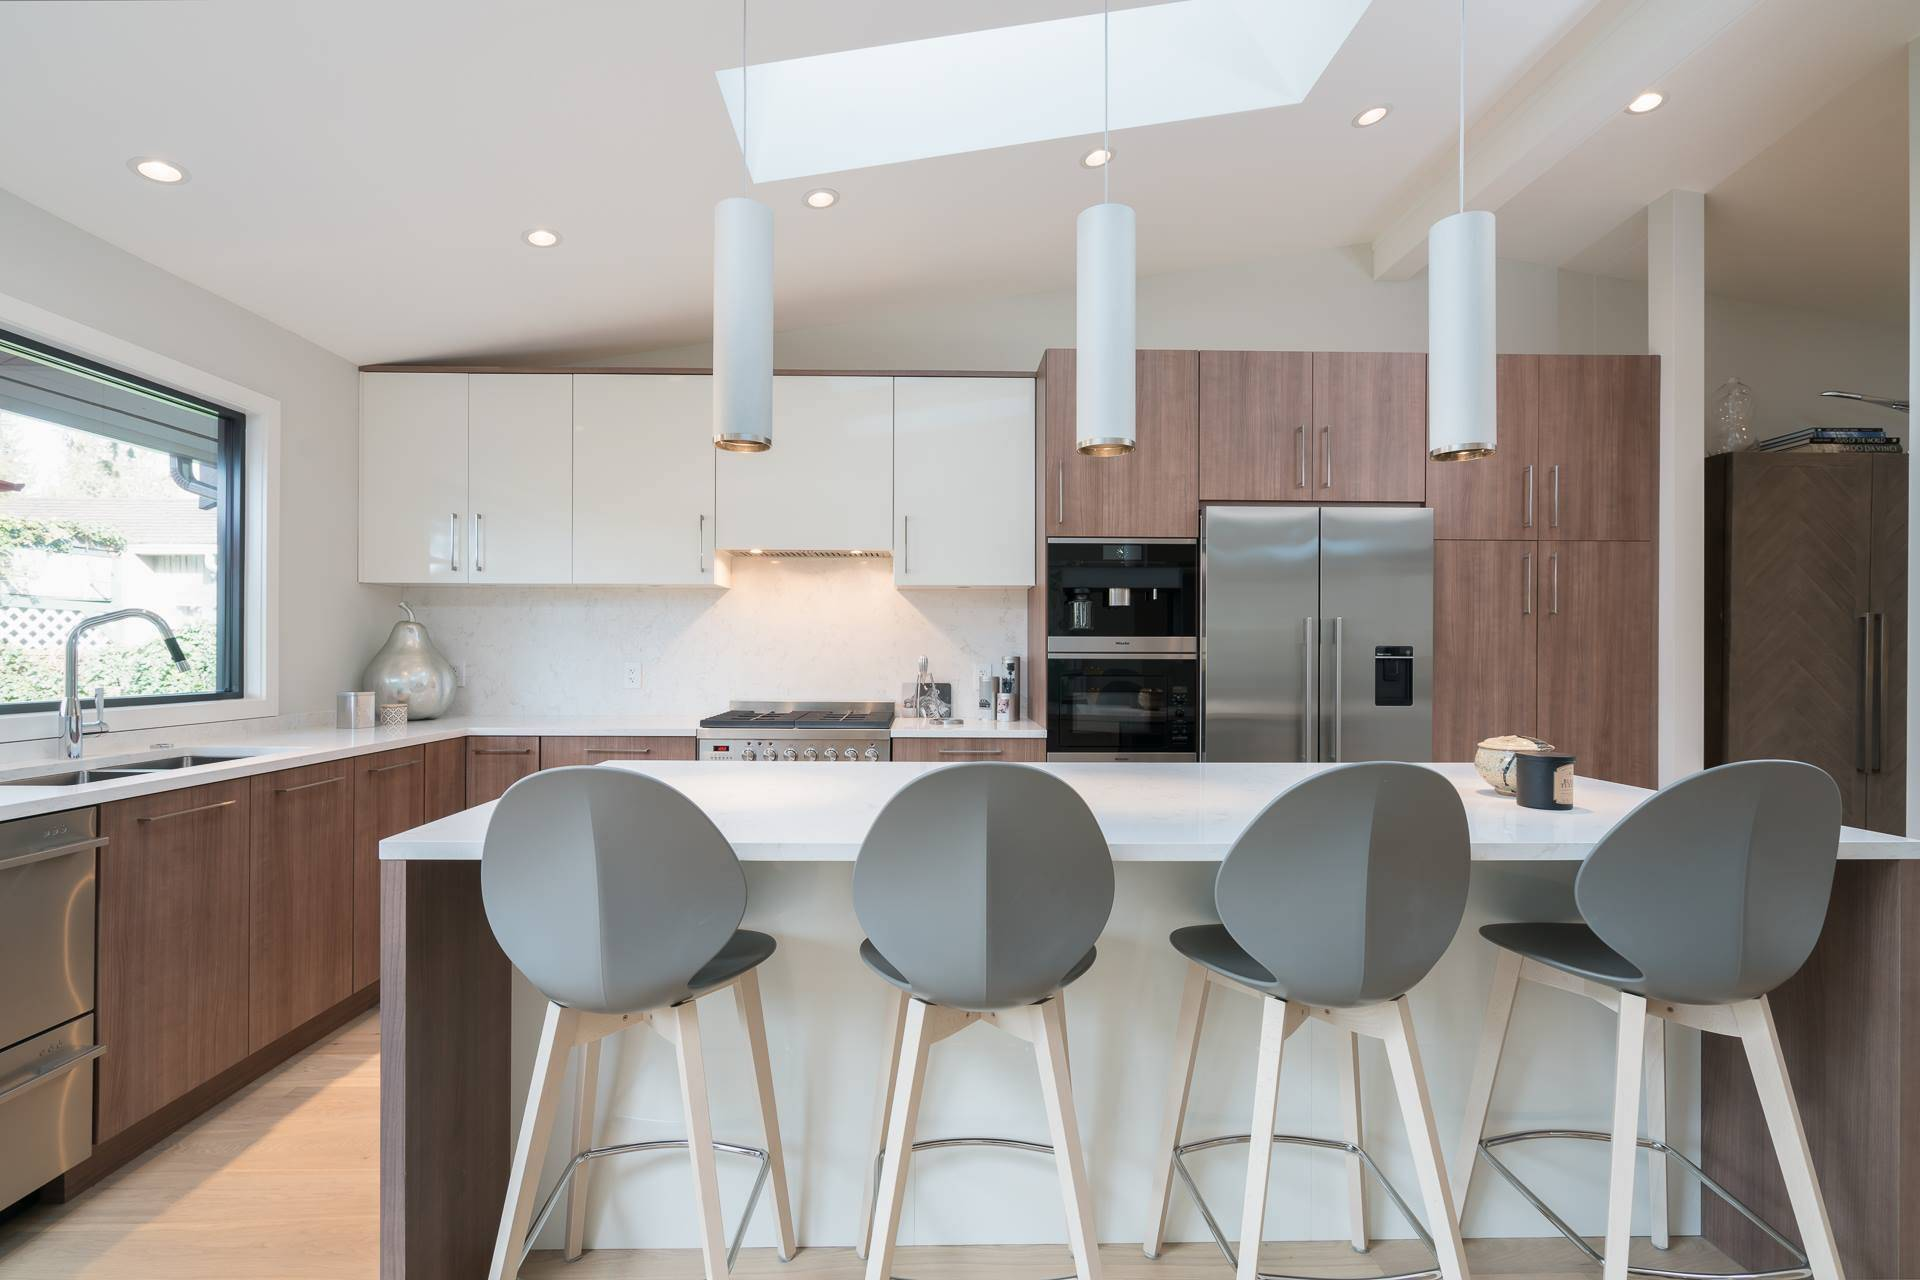 Discover the endless Kitchen and Bathroom possibilities at Langley's new Design Centre